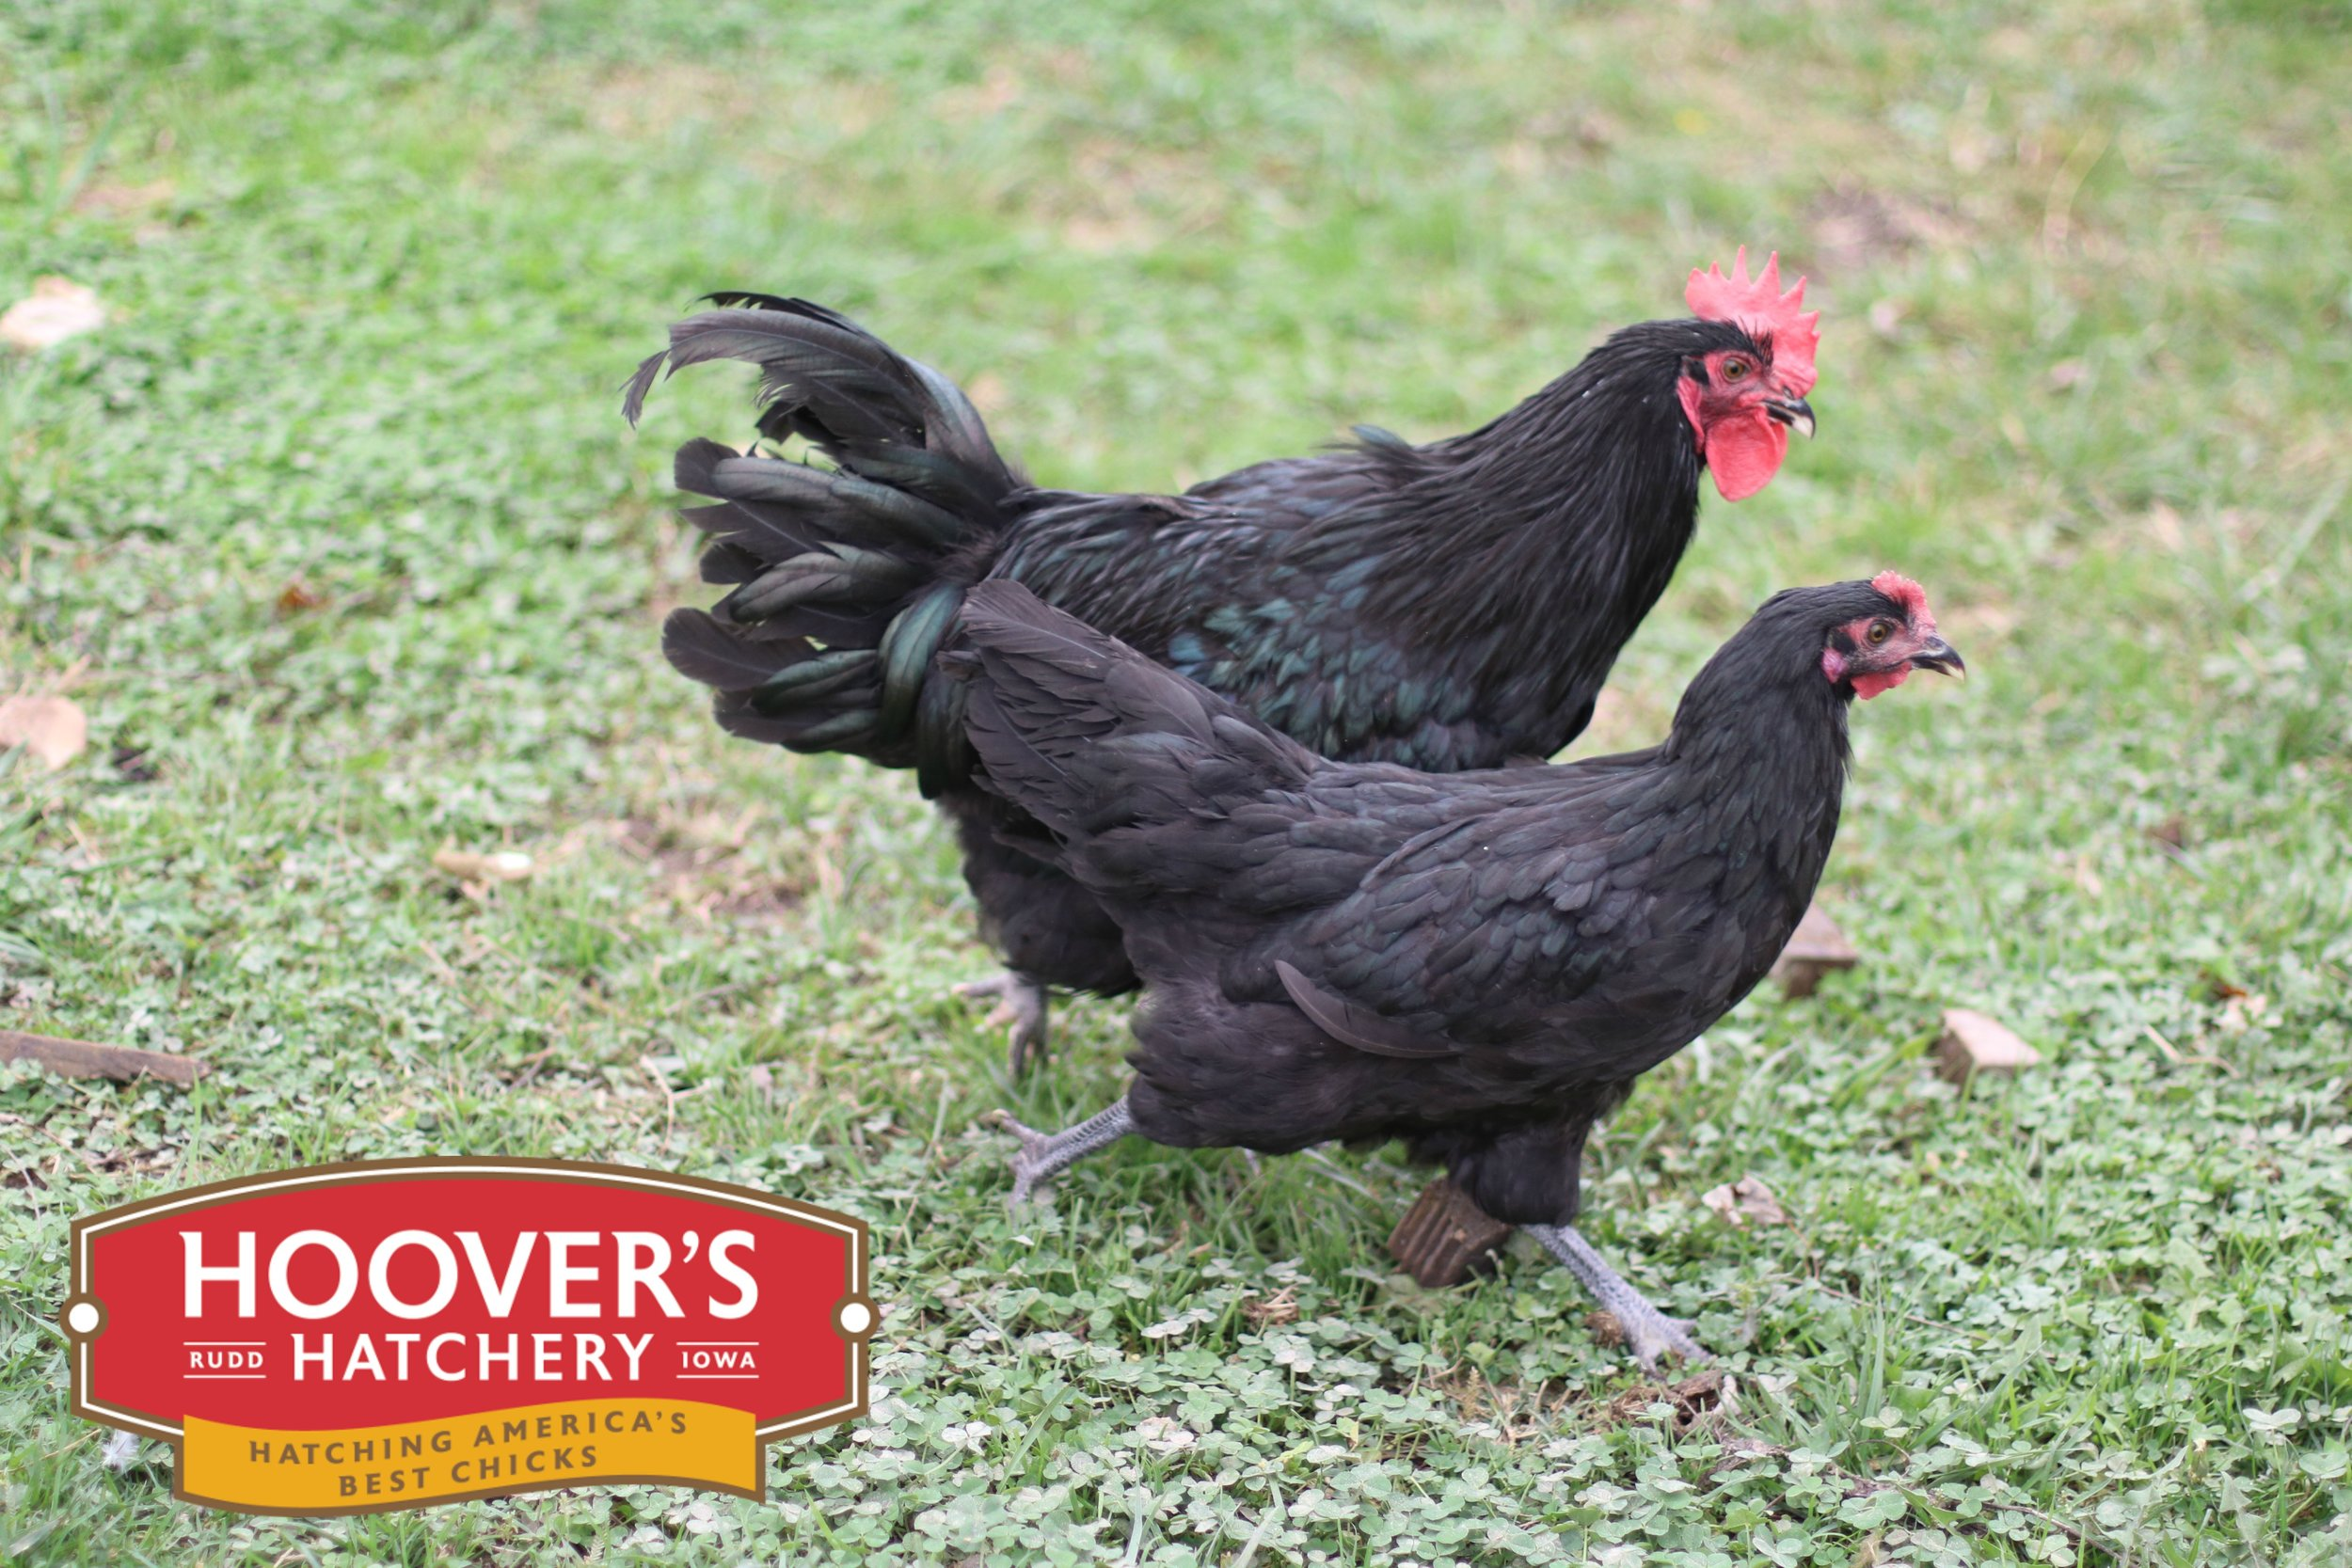 Black Maran - The Maran breed originates from a town called Marans, France. It is a very winter hardy breed with a docile temperament. This breed is known to be more athletic and taking to foraging and free ranging more often than other breeds. The Black Maran lays a lighter brown egg, unlike the Black Copper Maran that lays a very dark brown egg. These tough birds make a great addition to any backyard flock. APPROX. 200 MEDIUM EGGS/YEAR | EGG COLOR: BROWN | MATURE WT: MALE 6 LBS. FEMALE 4.5 LBS.